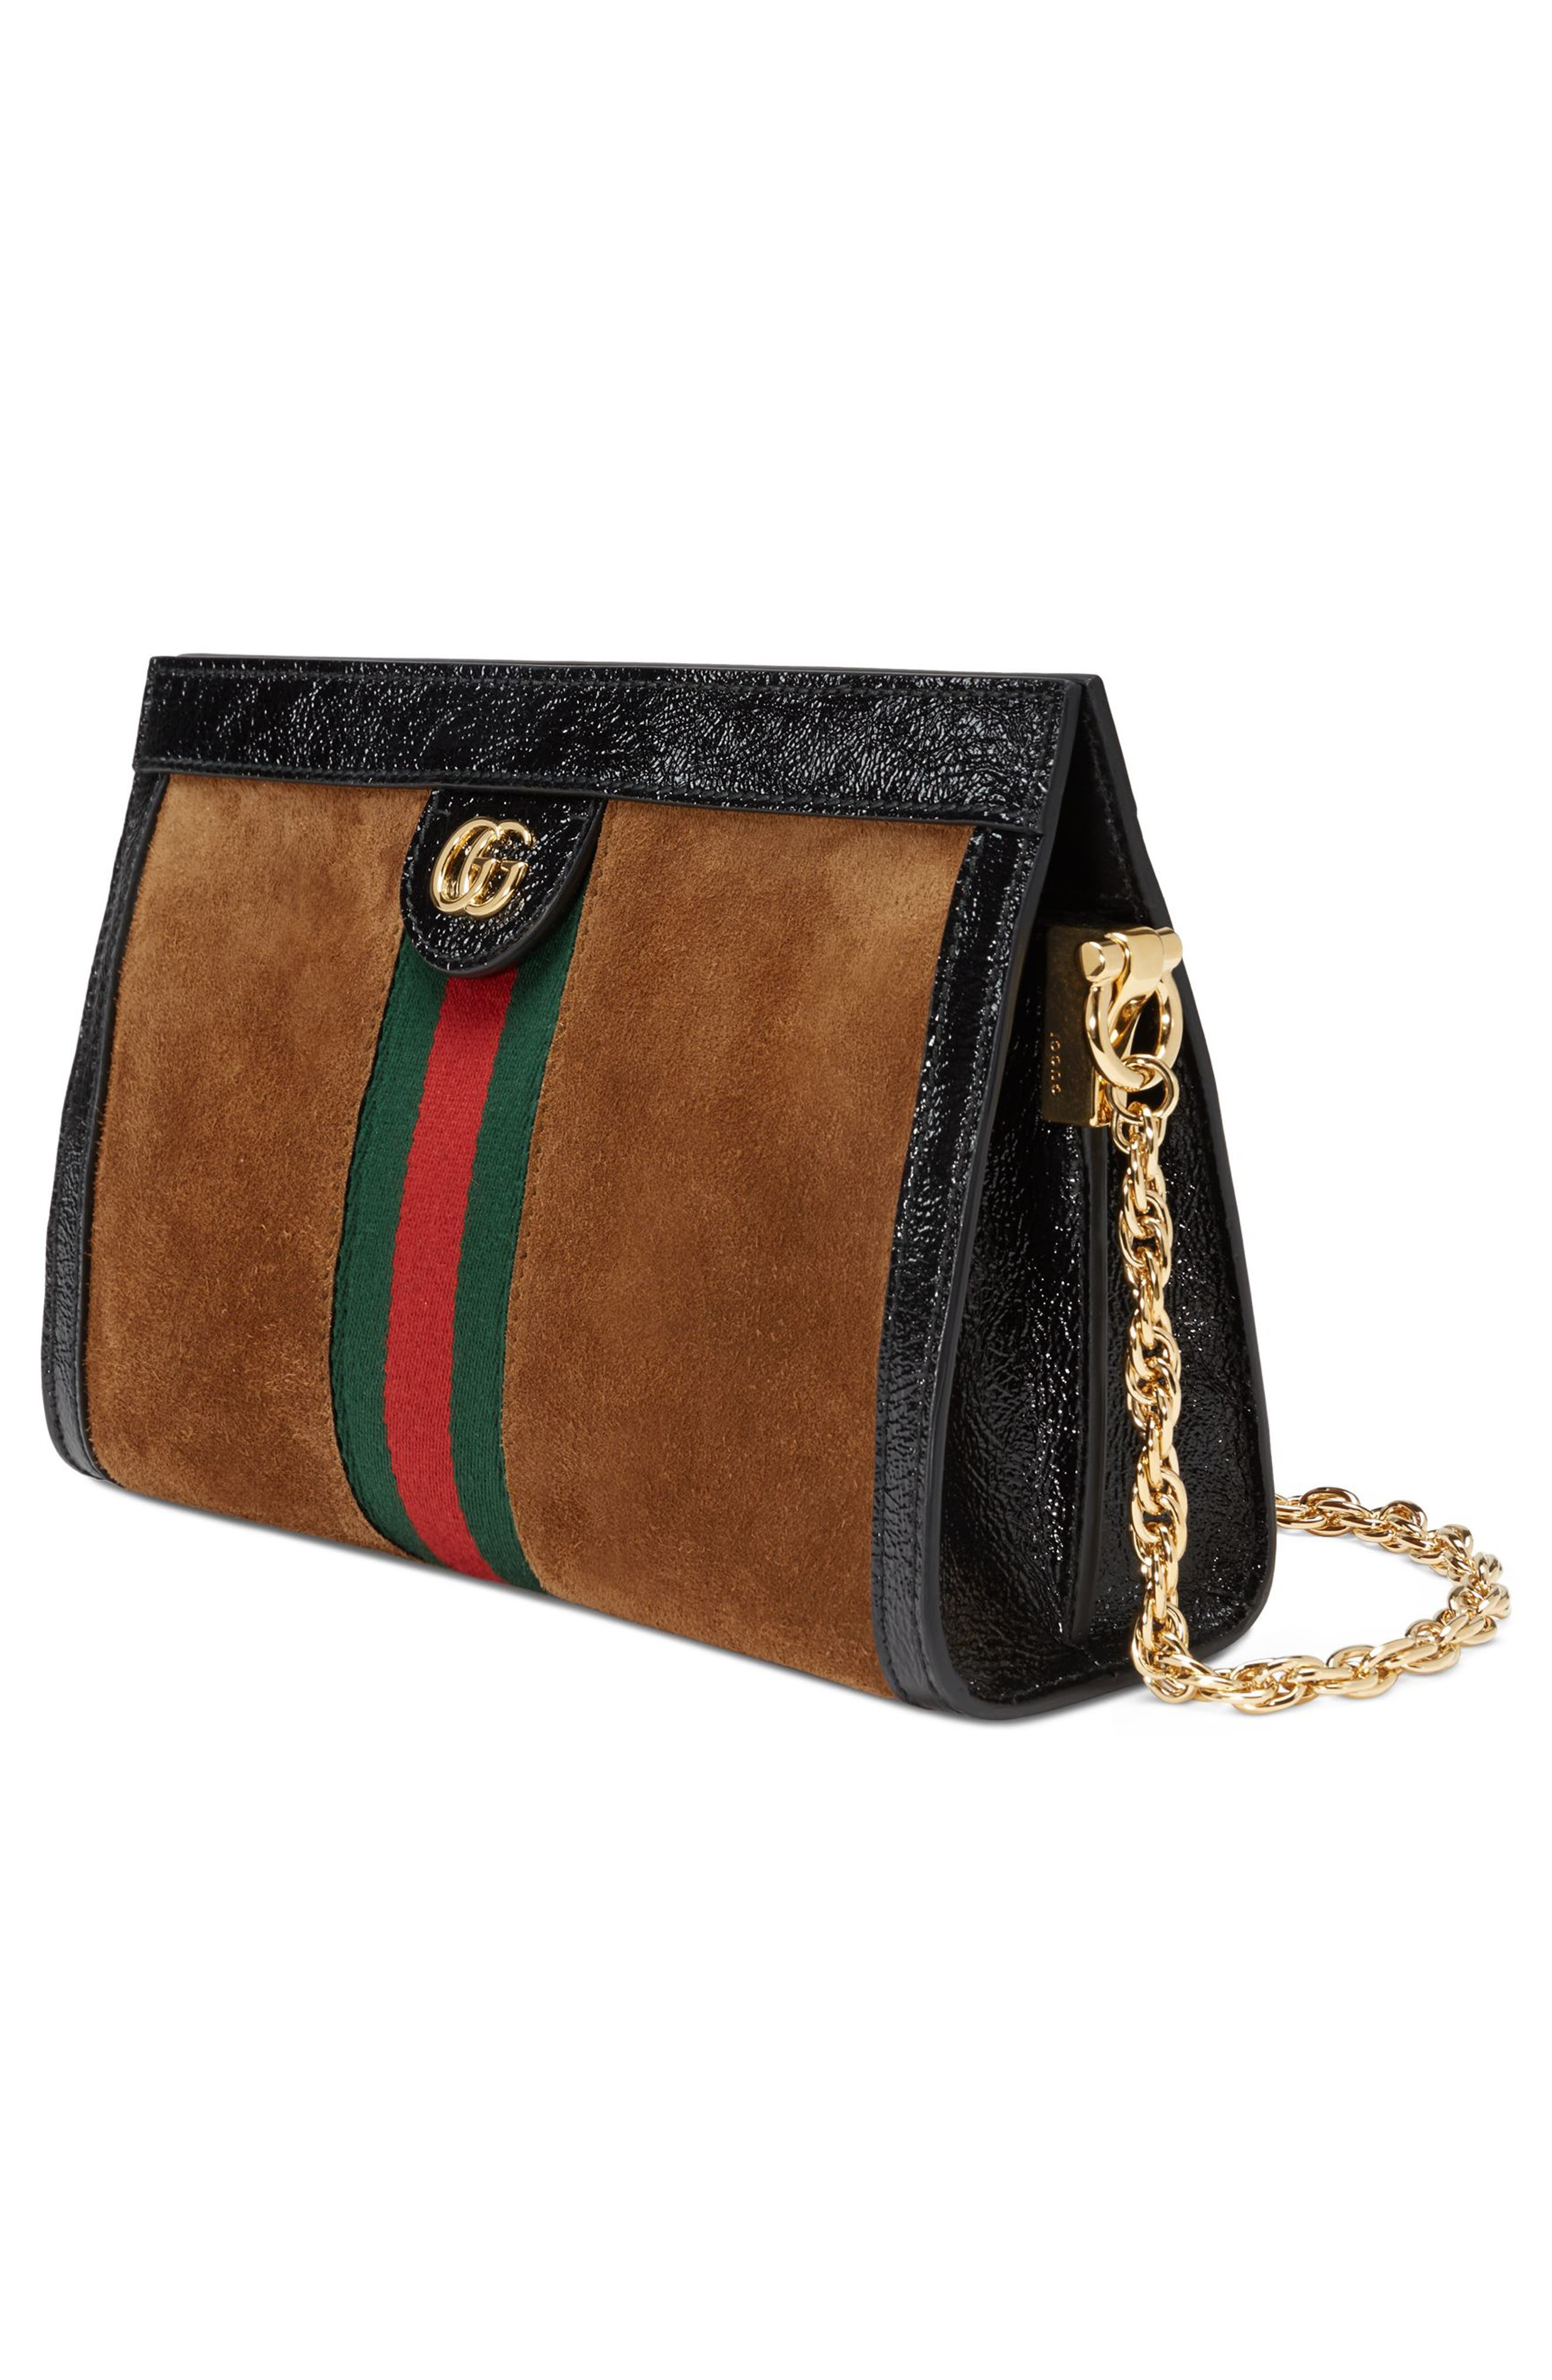 Small Linea Chain Shoulder Bag,                             Alternate thumbnail 4, color,                             NOCCIOLA/ NERO/ VERT RED VERT